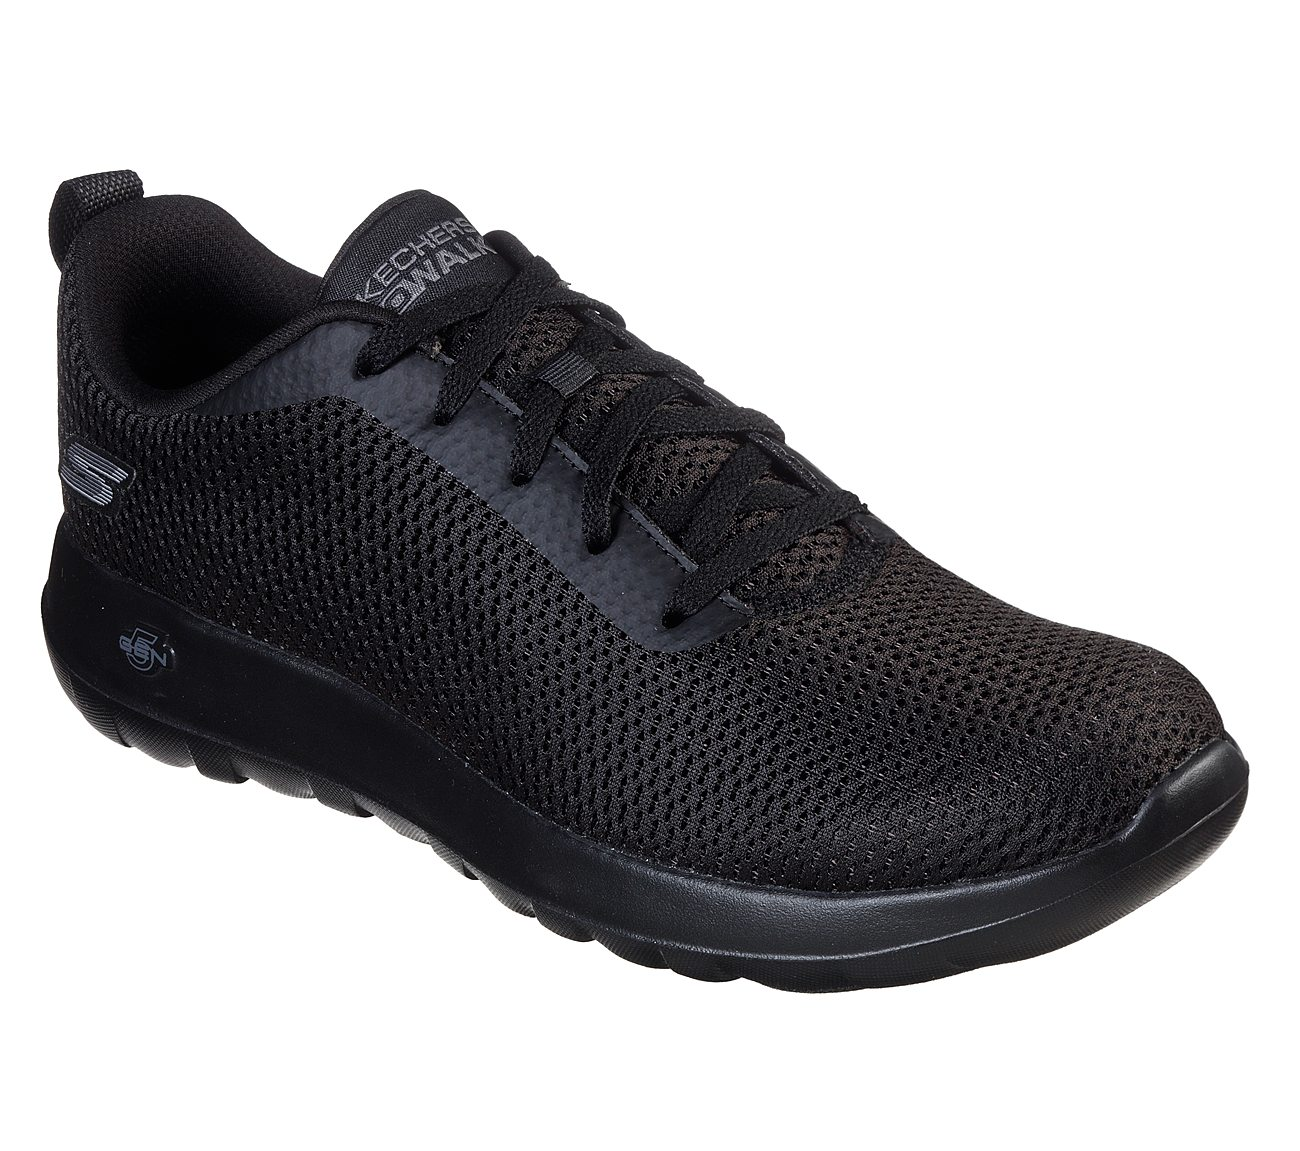 SKECHERS Men's Skechers GOwalk Max - SKECHERS Polska